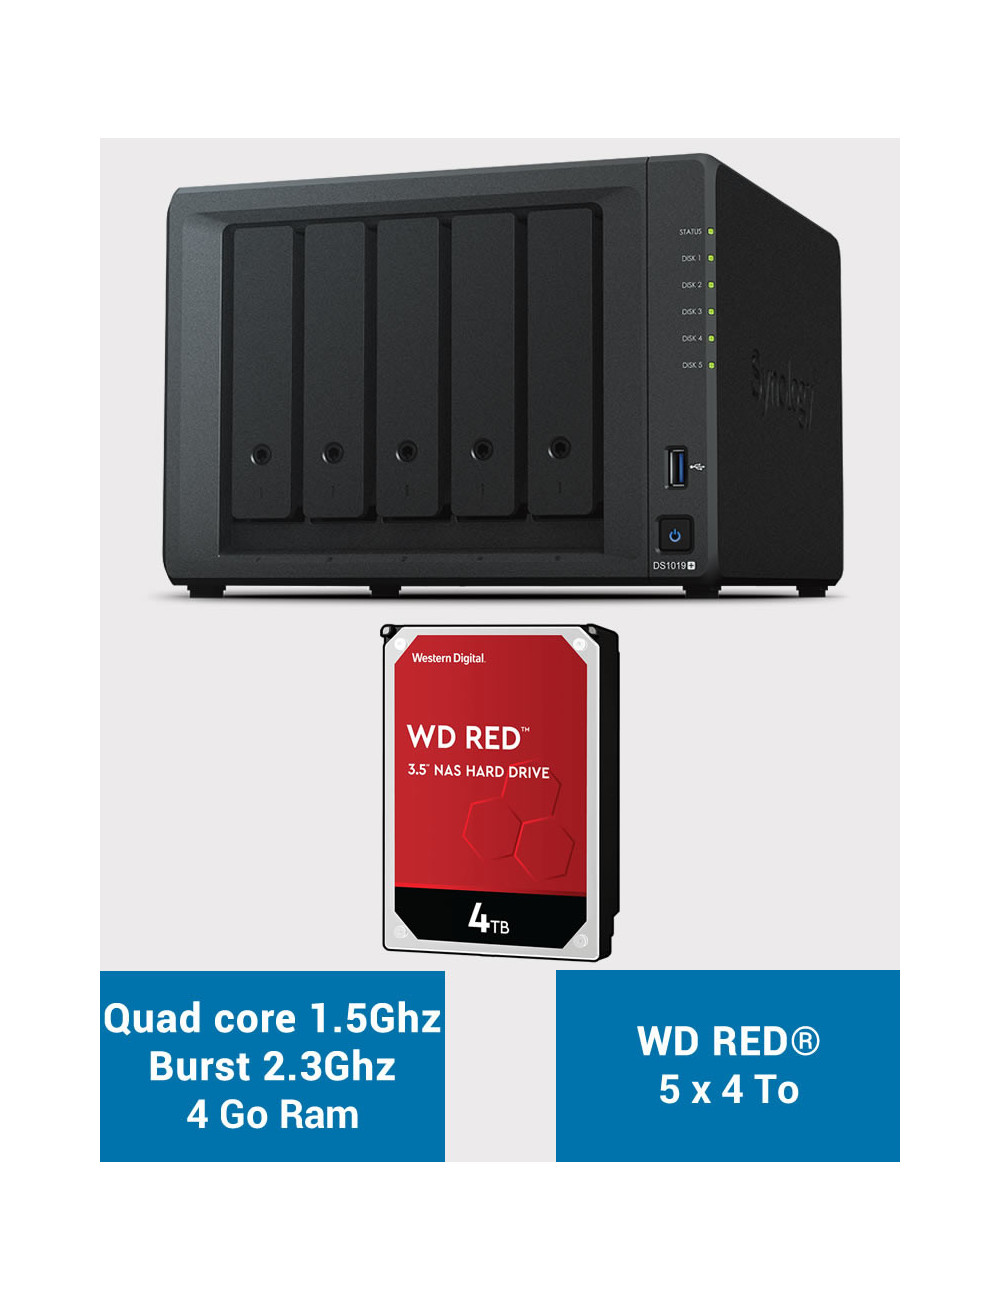 Synology DS1019+ NAS Server WD RED 20TB (5x4TB)